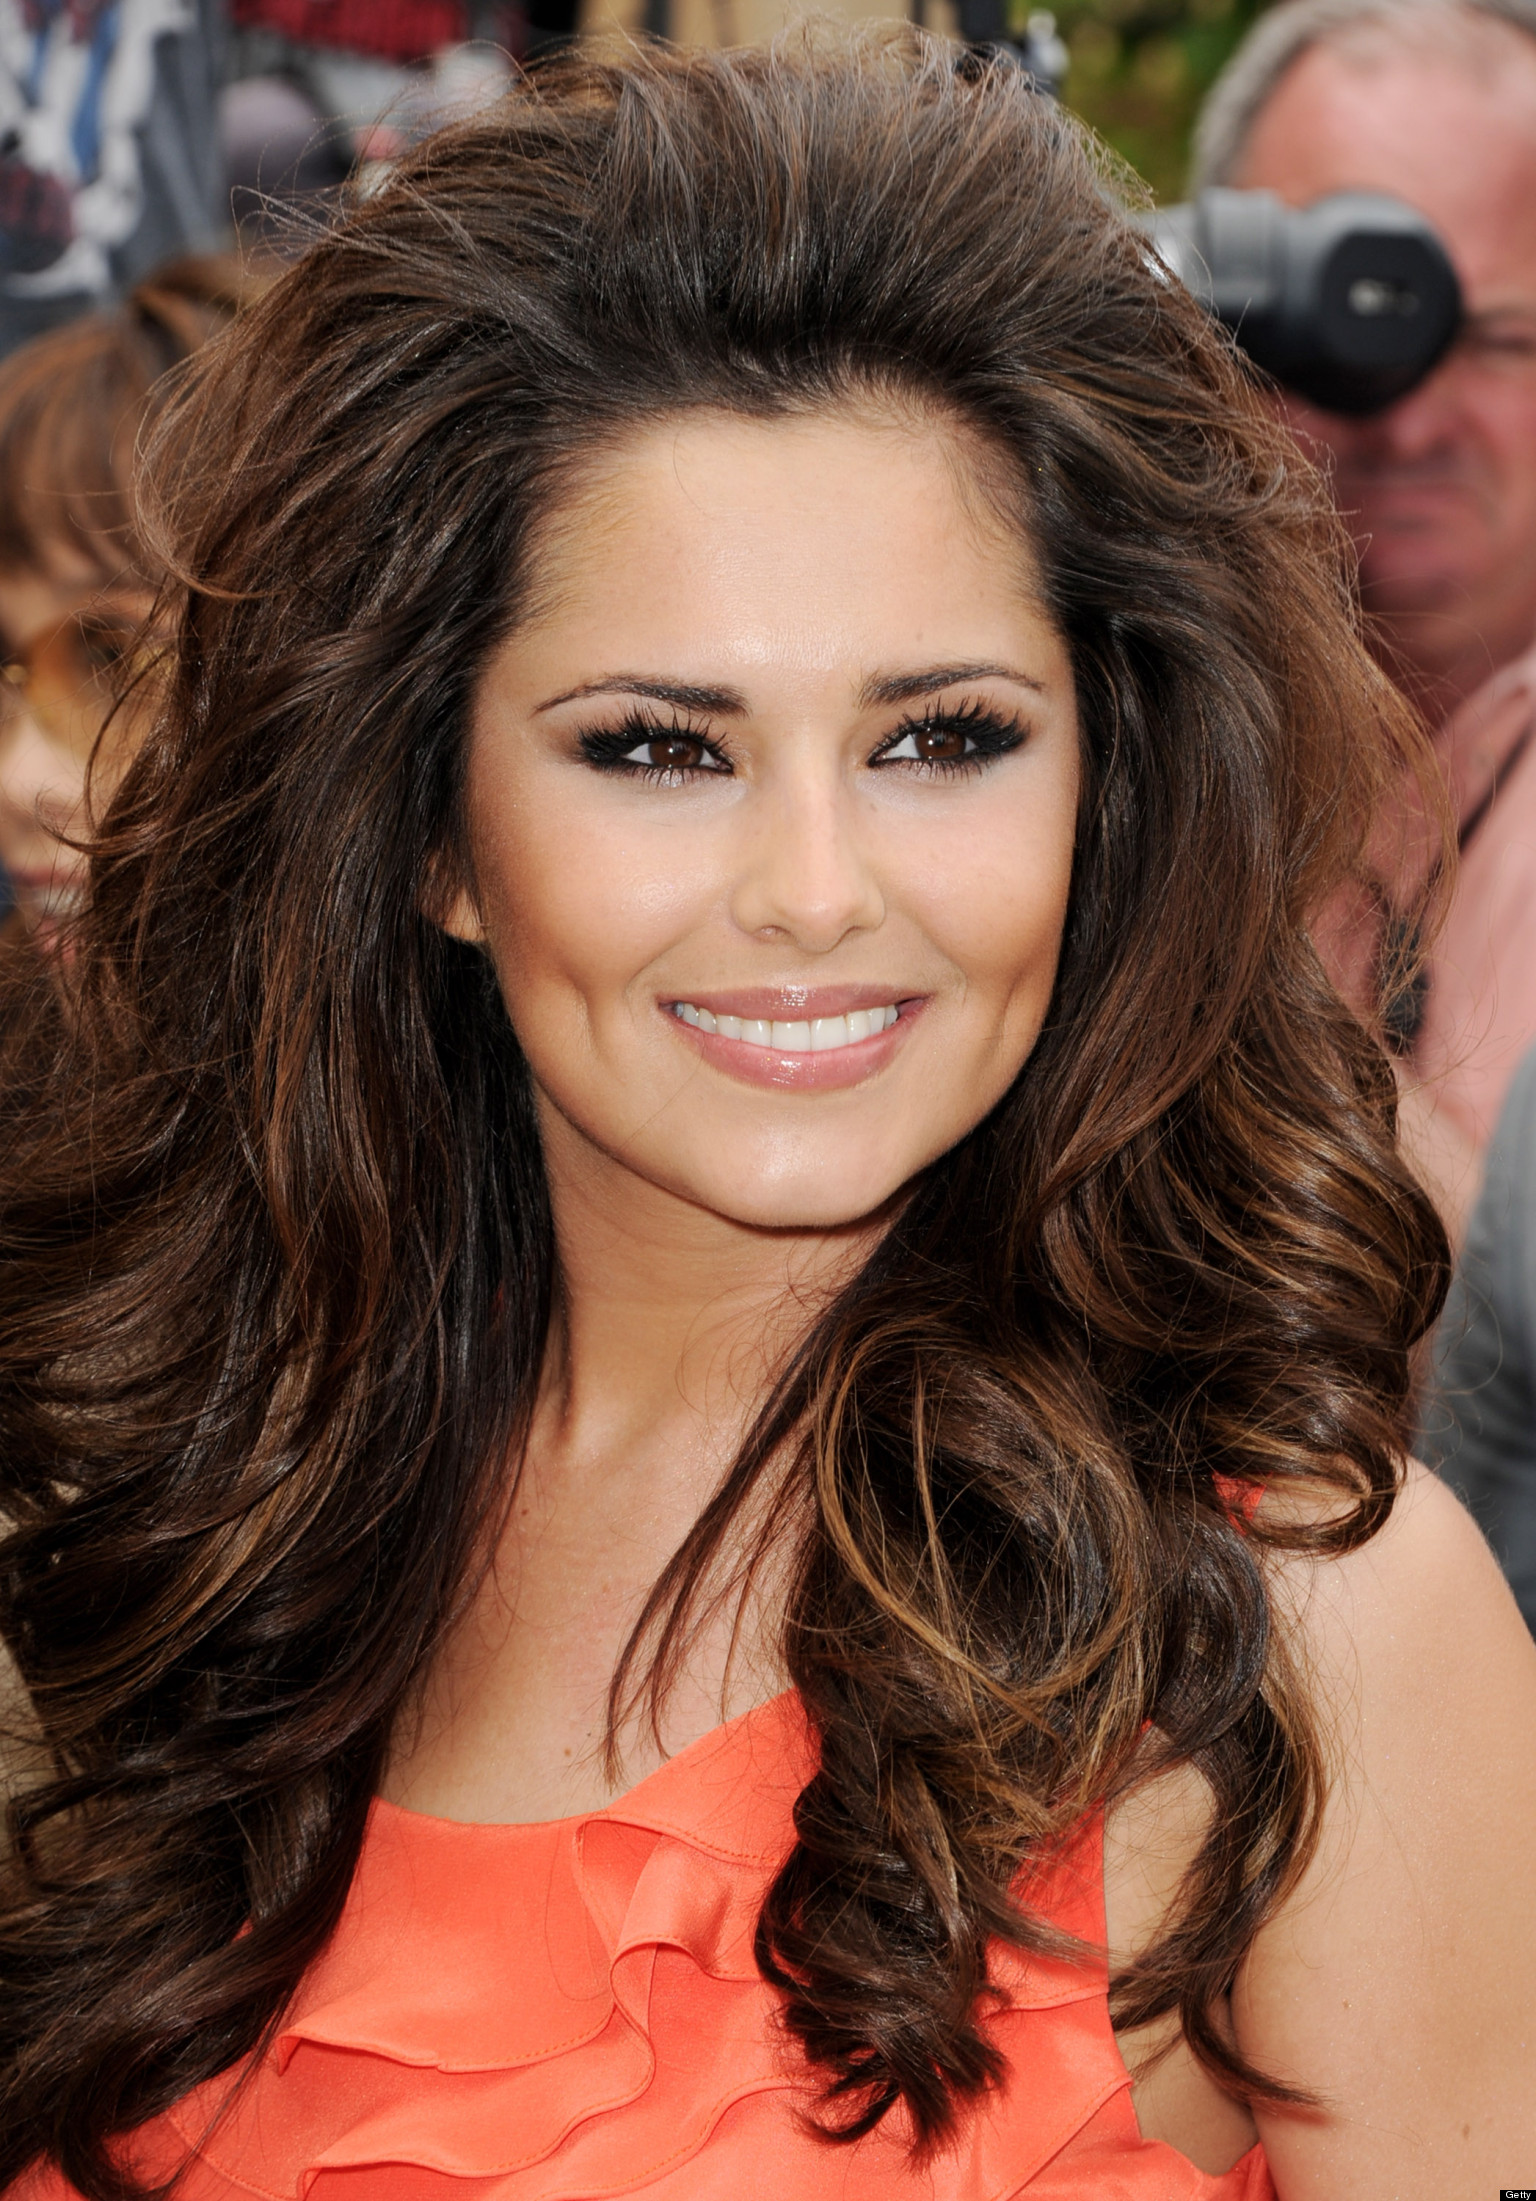 Cheryl Cole 'Gives Up On Cracking America' | HuffPost UK Cheryl Cole